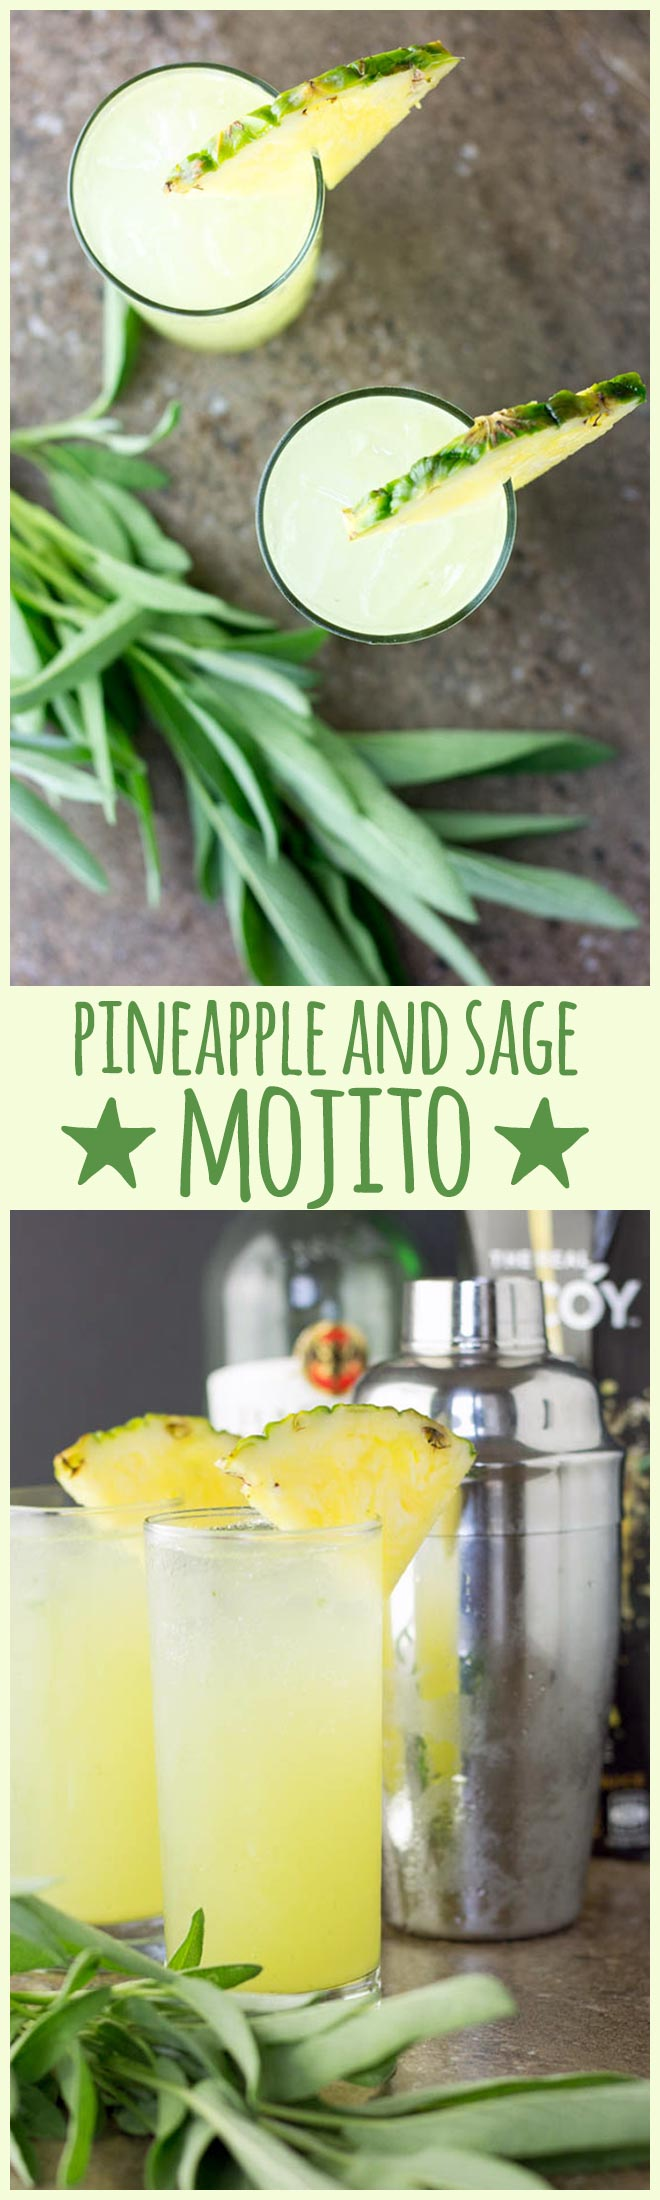 Pineapple and sage are a curiously delicious combination in this light and refreshing twist on a classic mojito.